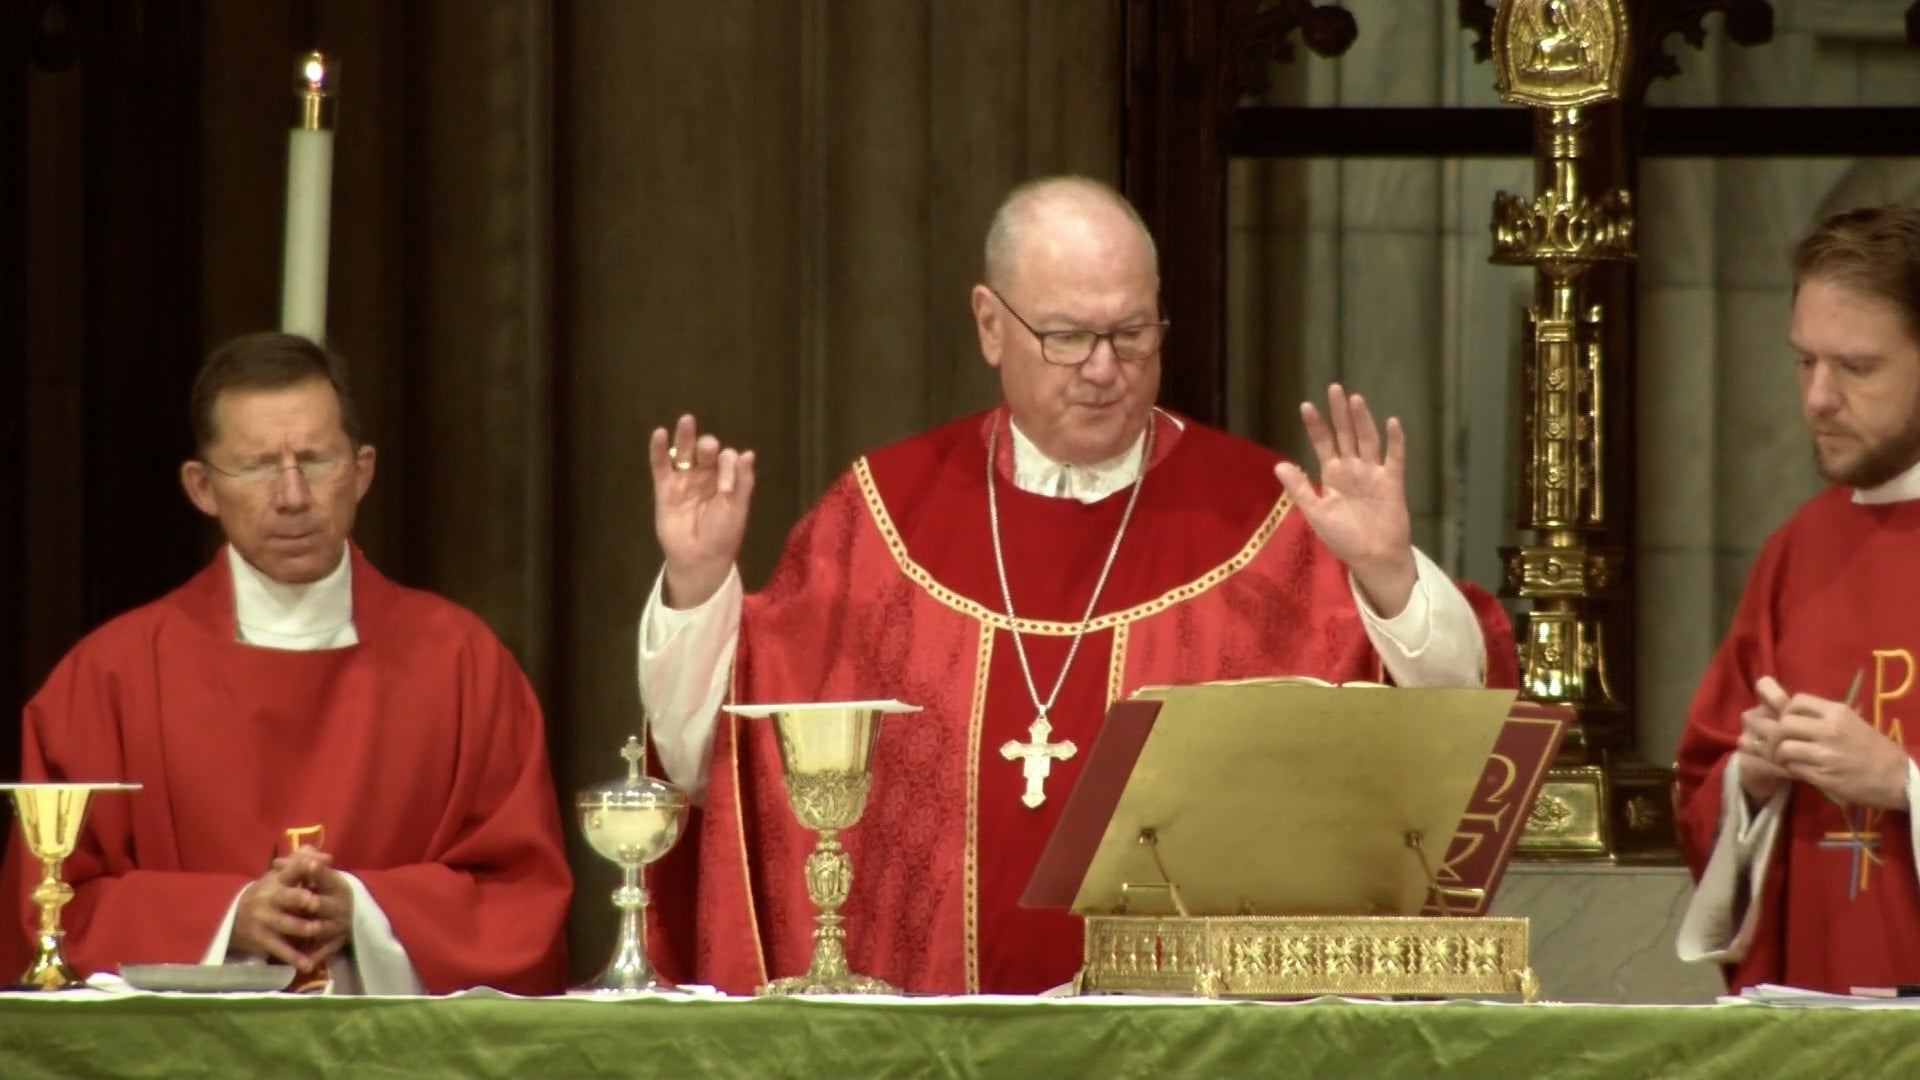 Mass from St. Patrick's Cathedral - October 14, 2021